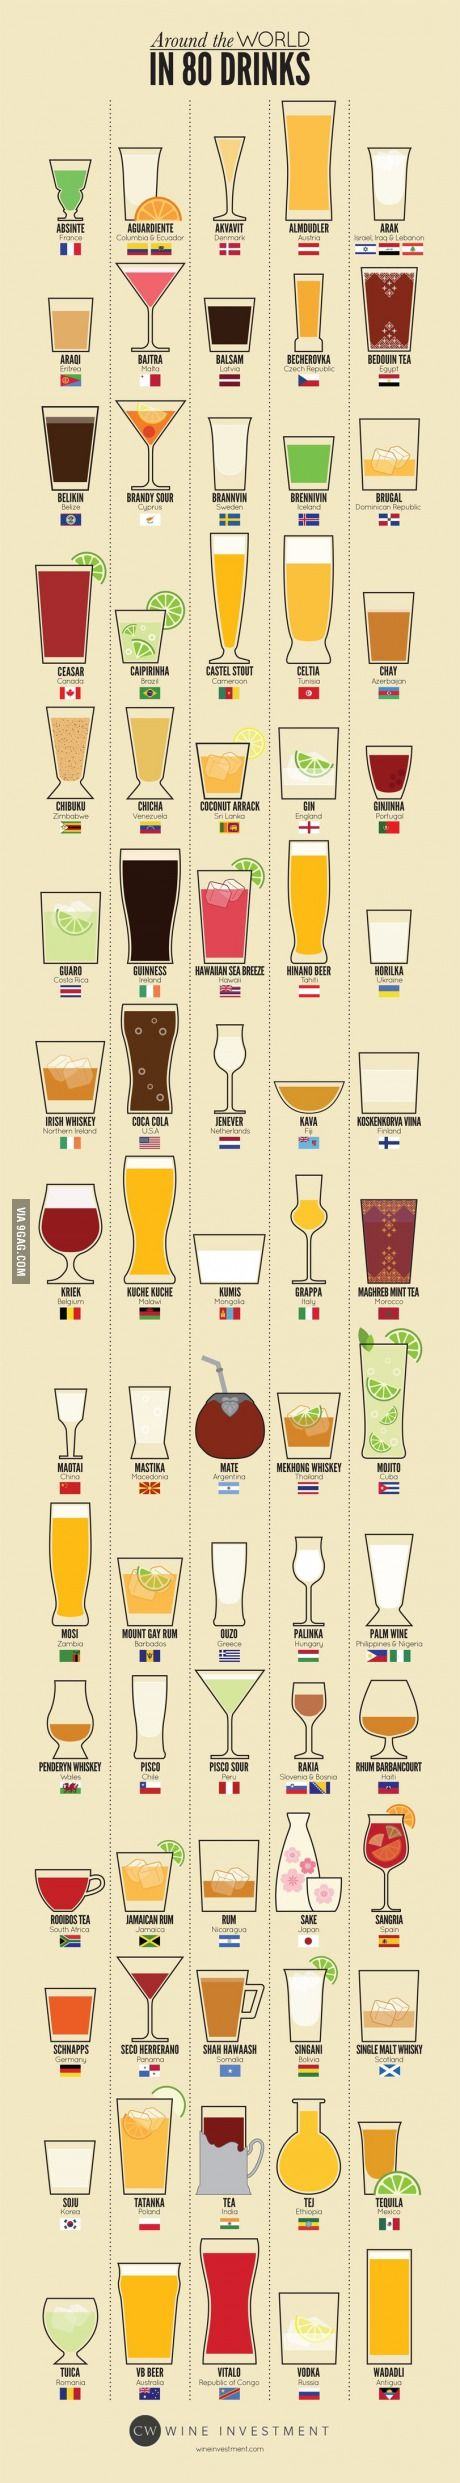 Cool chart! Around the world in 80 drinks. Caipirinha, the yummy Brazilian drink made the list, of course. Make sure you have someone make it for you the RIGHT way. :)